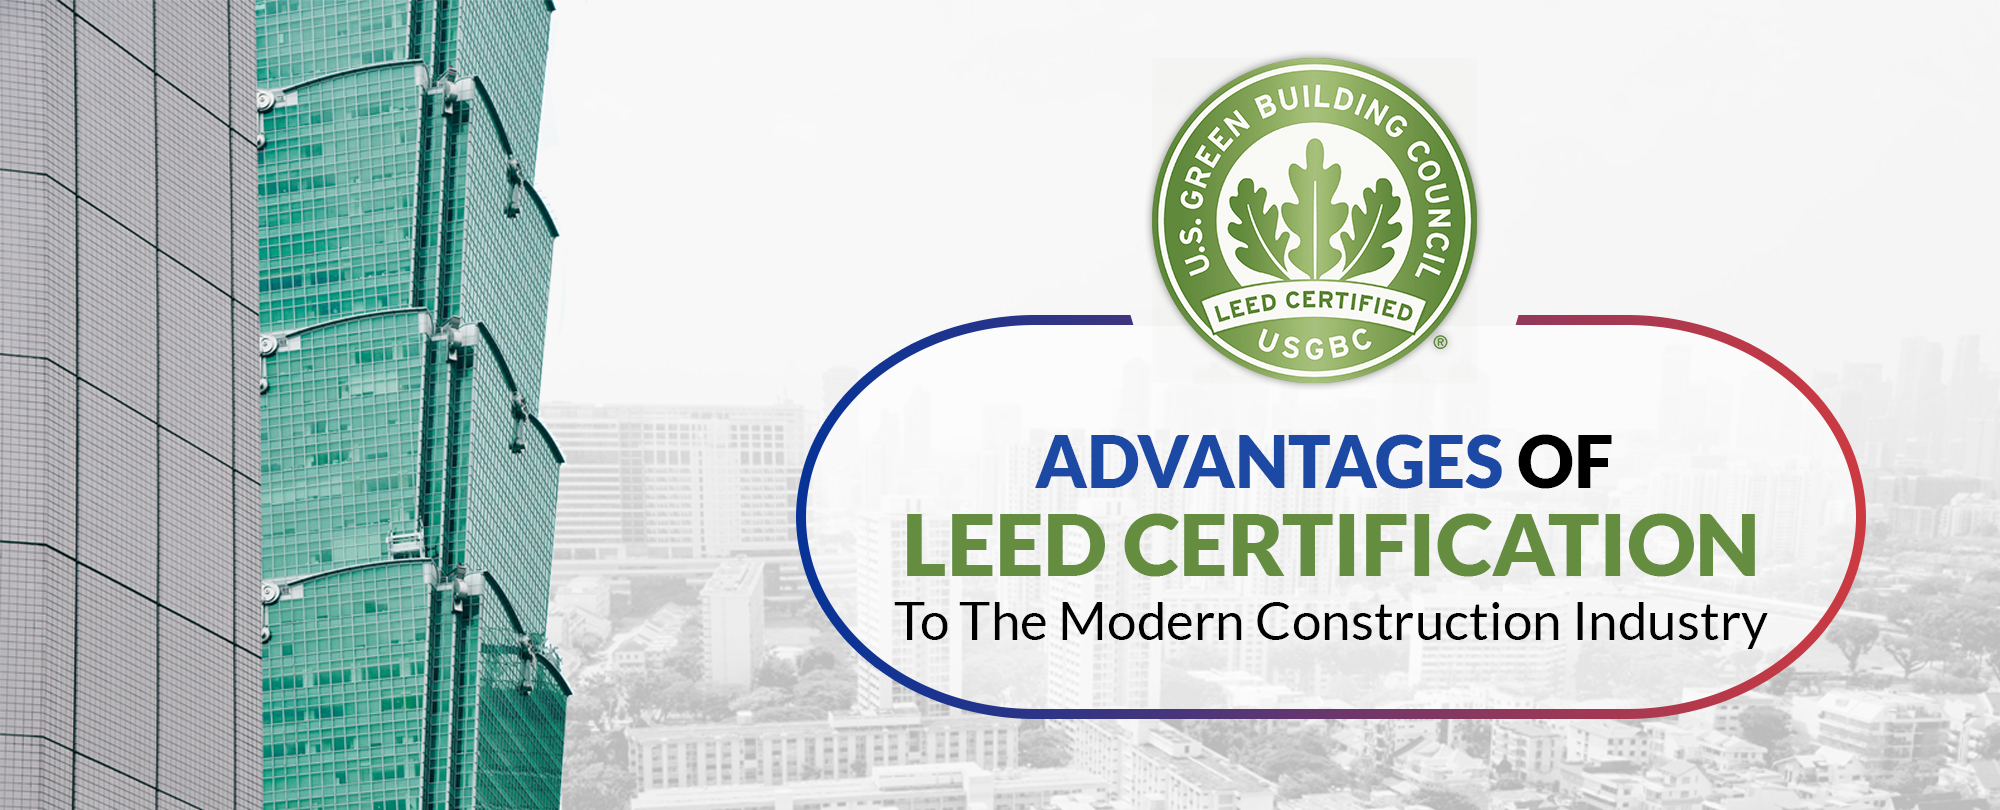 Advantages of leed certification for your organization for Advantages of leed certification